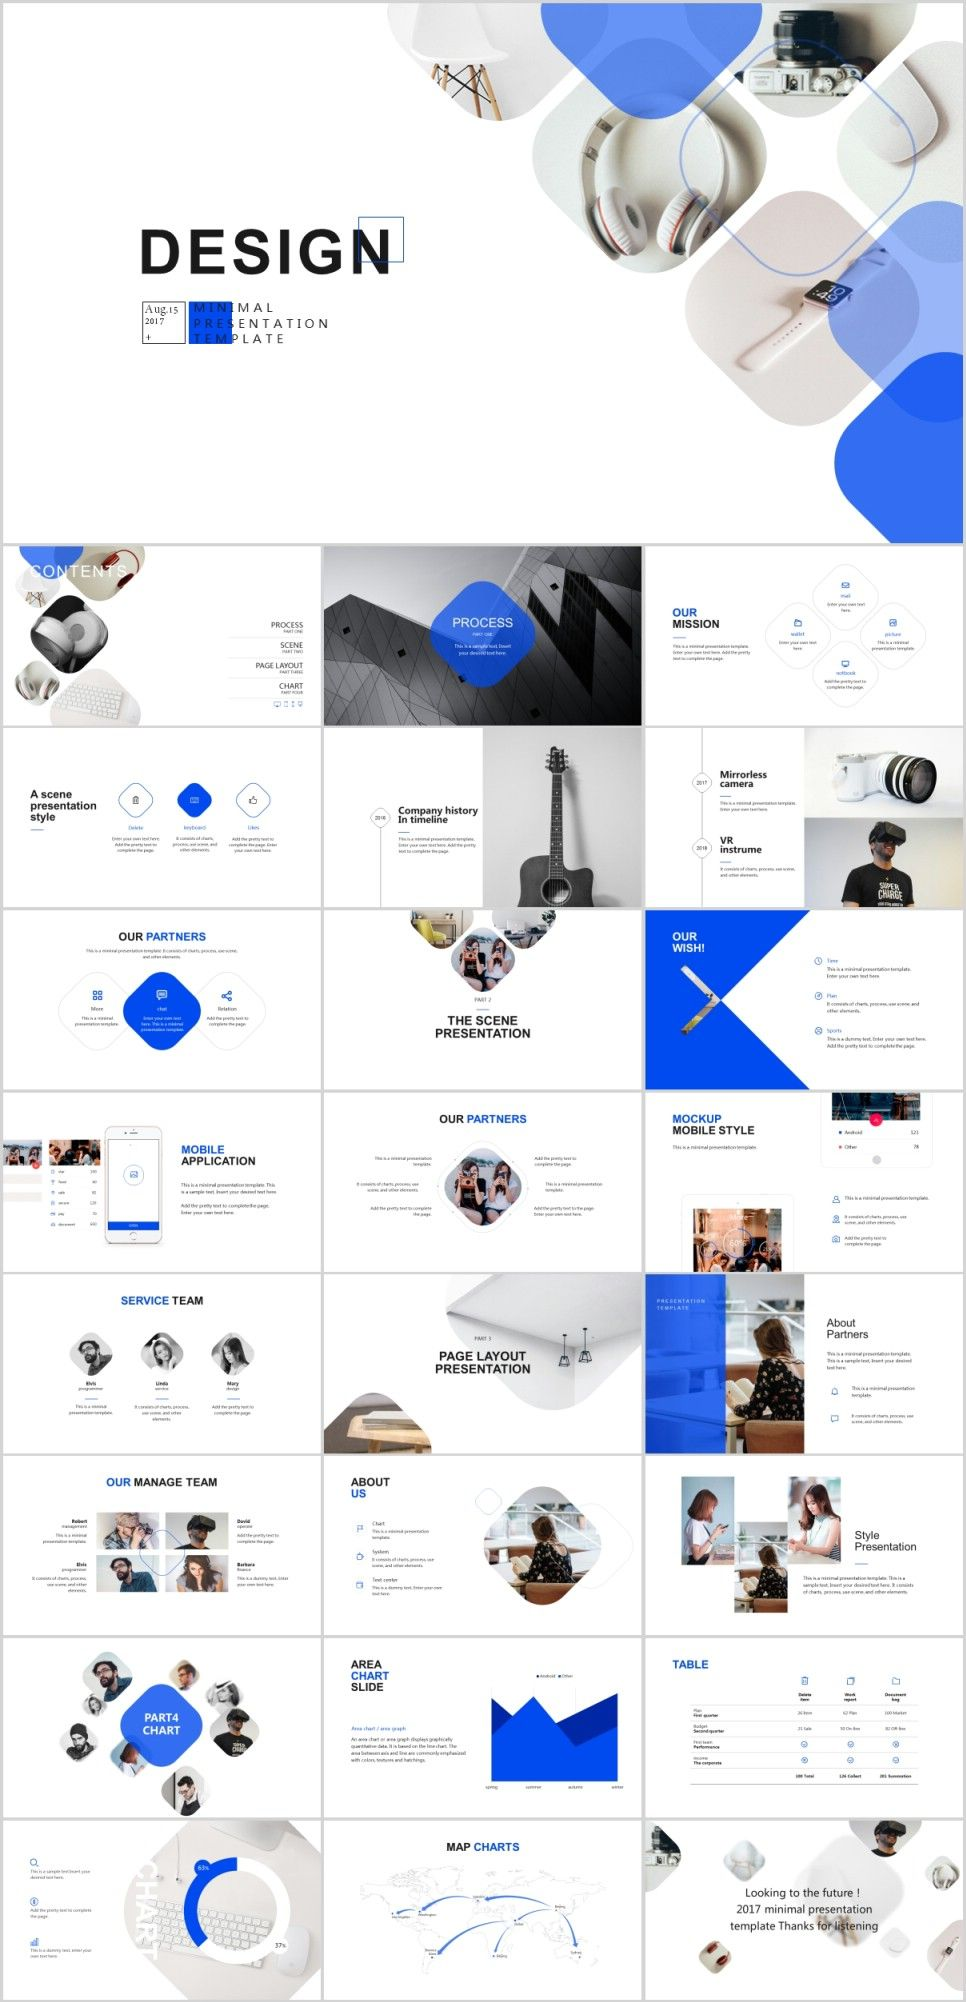 25+ company introduction timeline powerpoint template | 23. ppt, Powerpoint Template Business Product Overview Presentation, Presentation templates